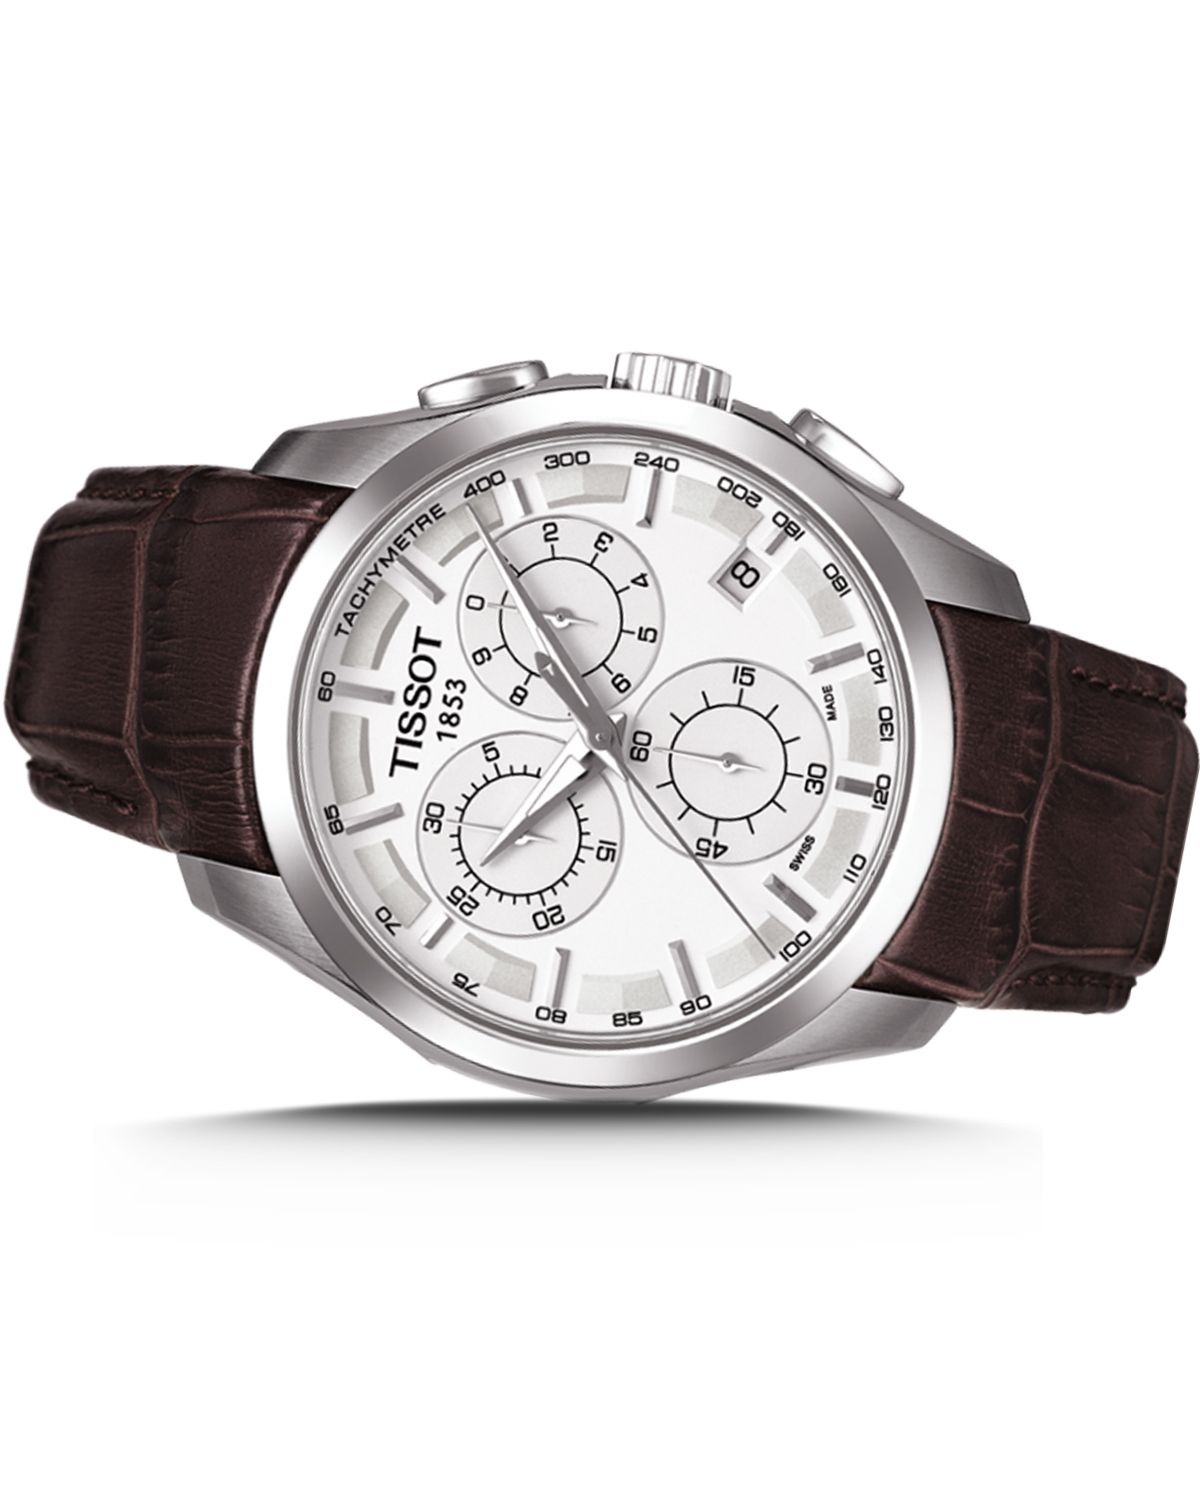 Tissot watches lowest price